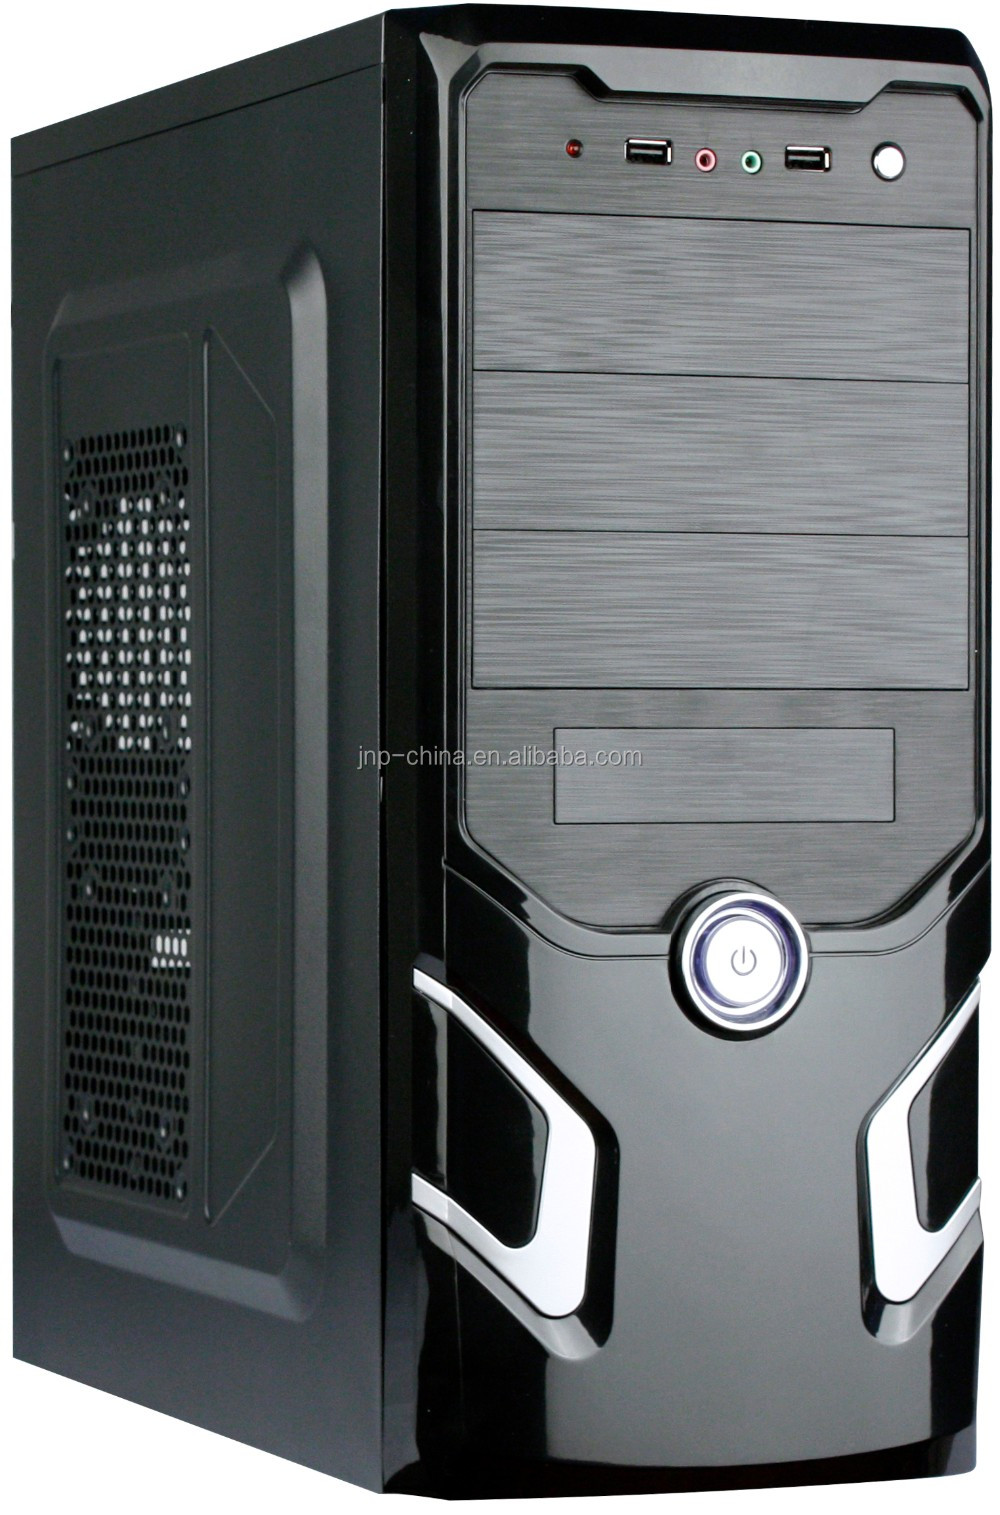 Case Pc Alibaba Cheap Price On Sale Atx Case Pc Computer Empty Case Buy Atx Case Pc Pc Computer Empty Case Atx Computer Empty Case Product On Alibaba